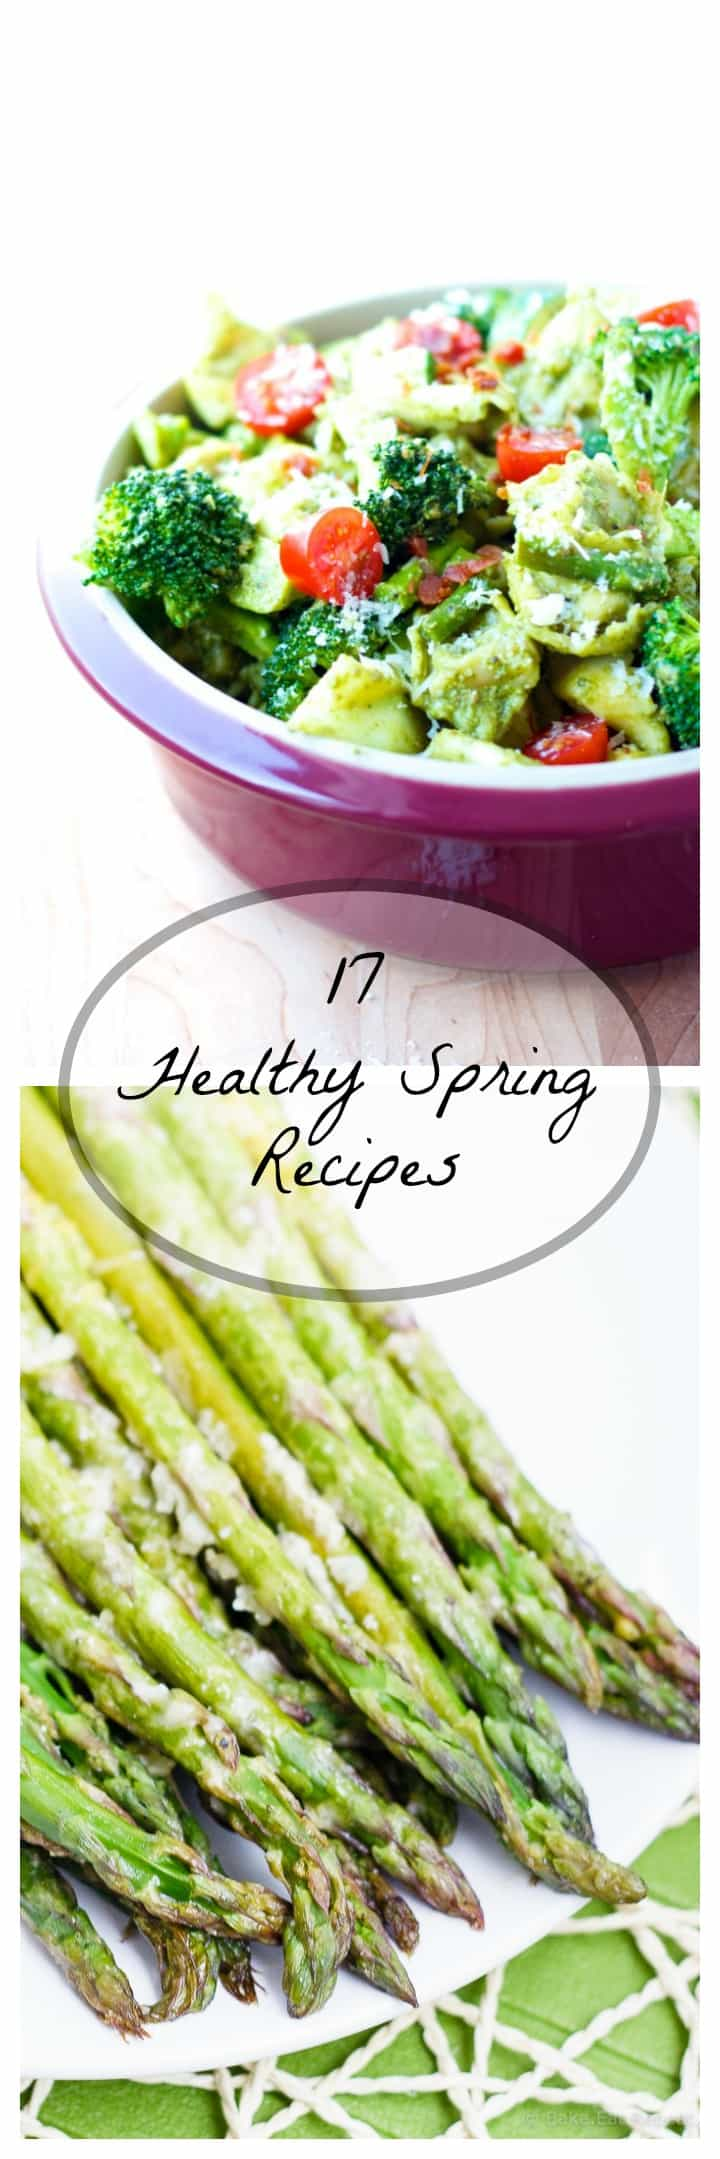 17 Healthy Spring Recipes - 17 healthy spring recipes filled with all the wonderful, bright green things that can be found - because spring means all the green things, all the time!